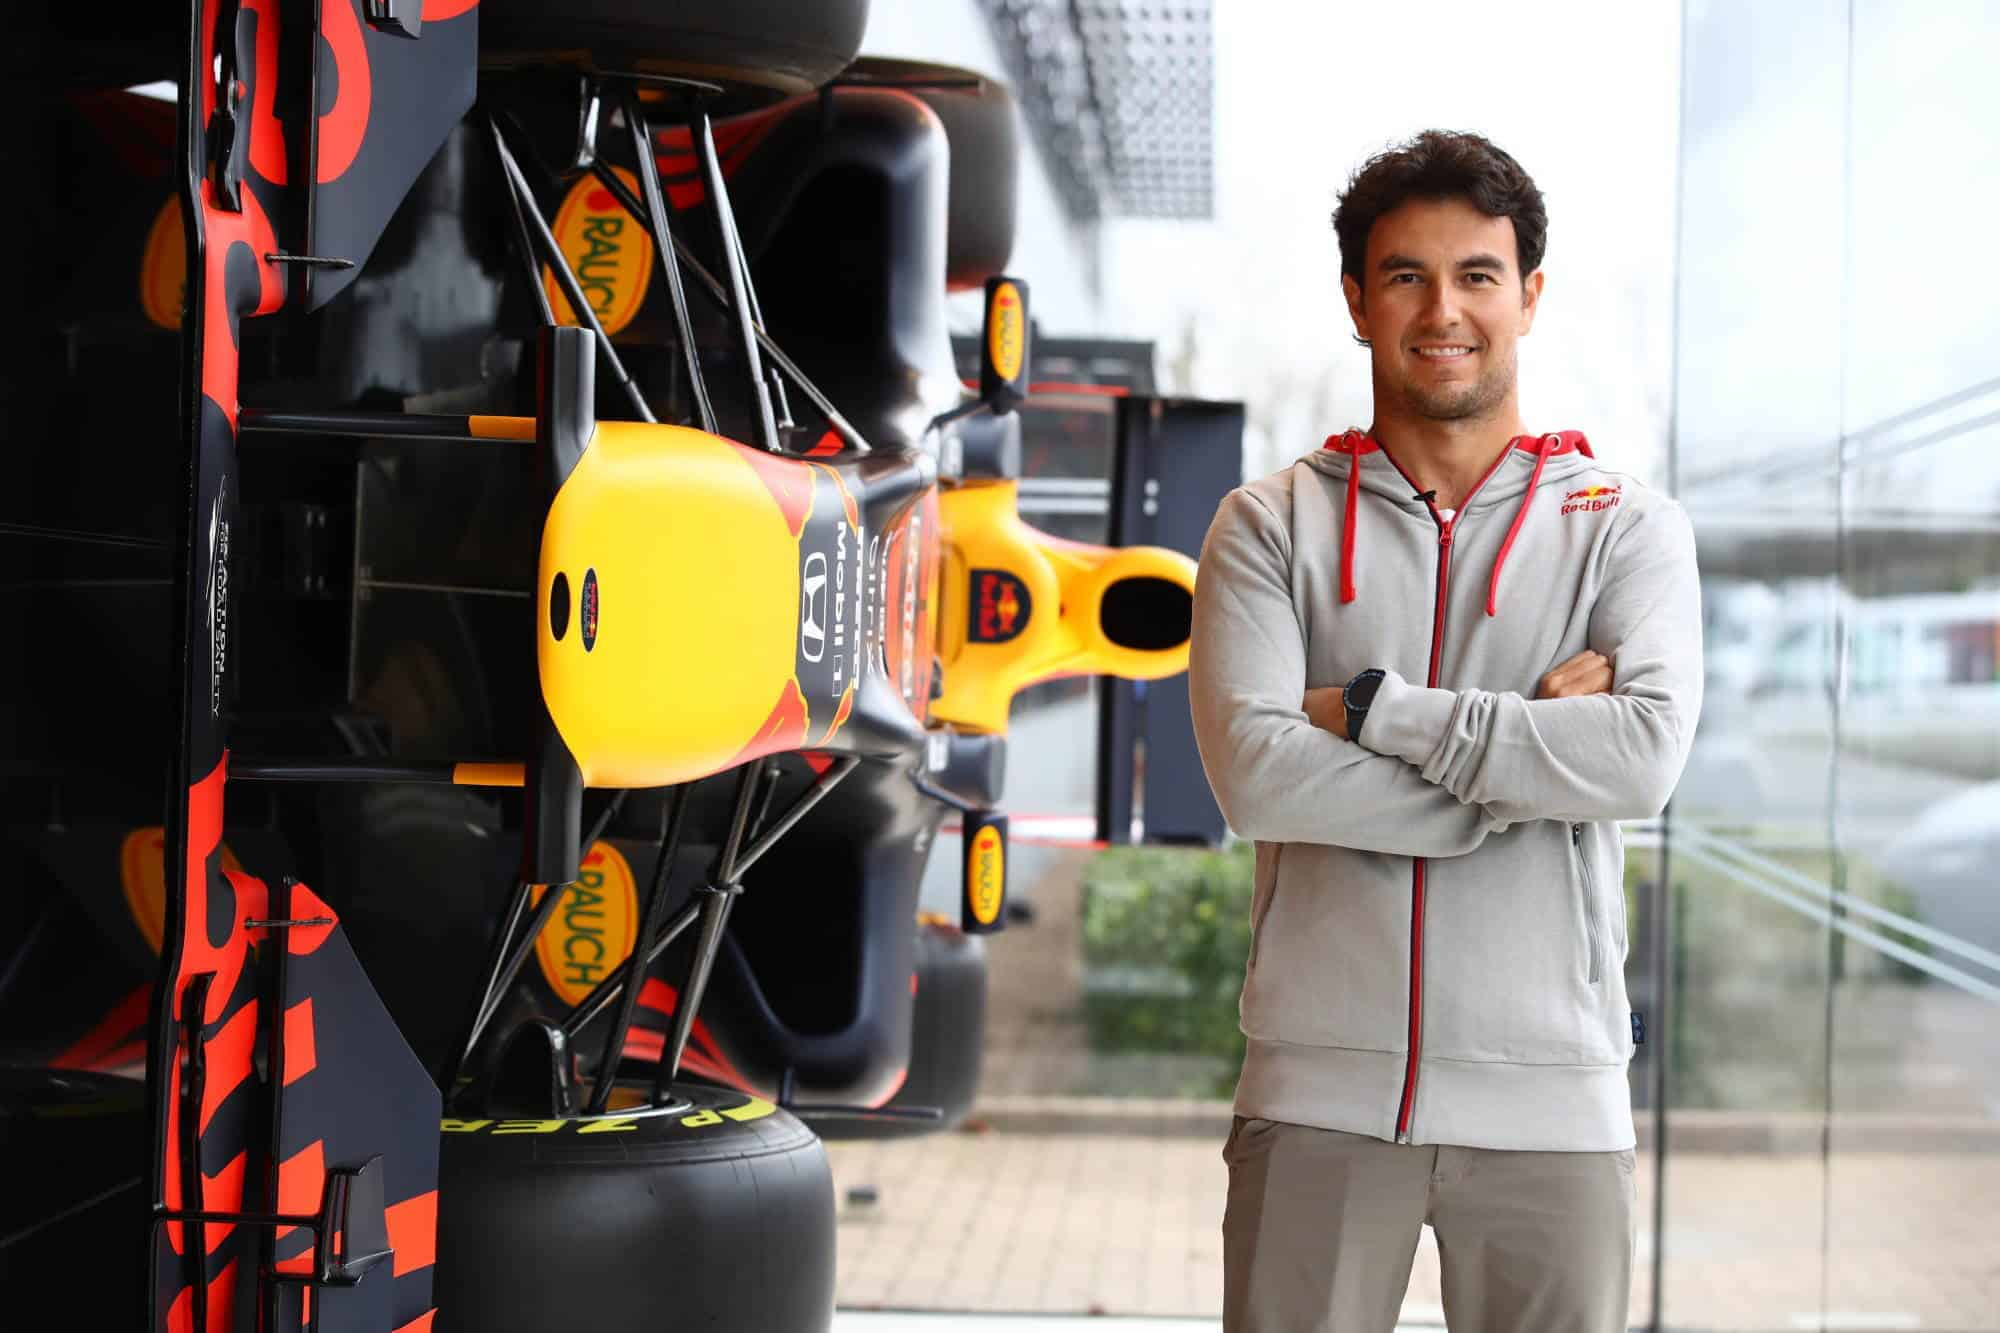 2021 Perez visits Red Bull factory Photo Red Bull